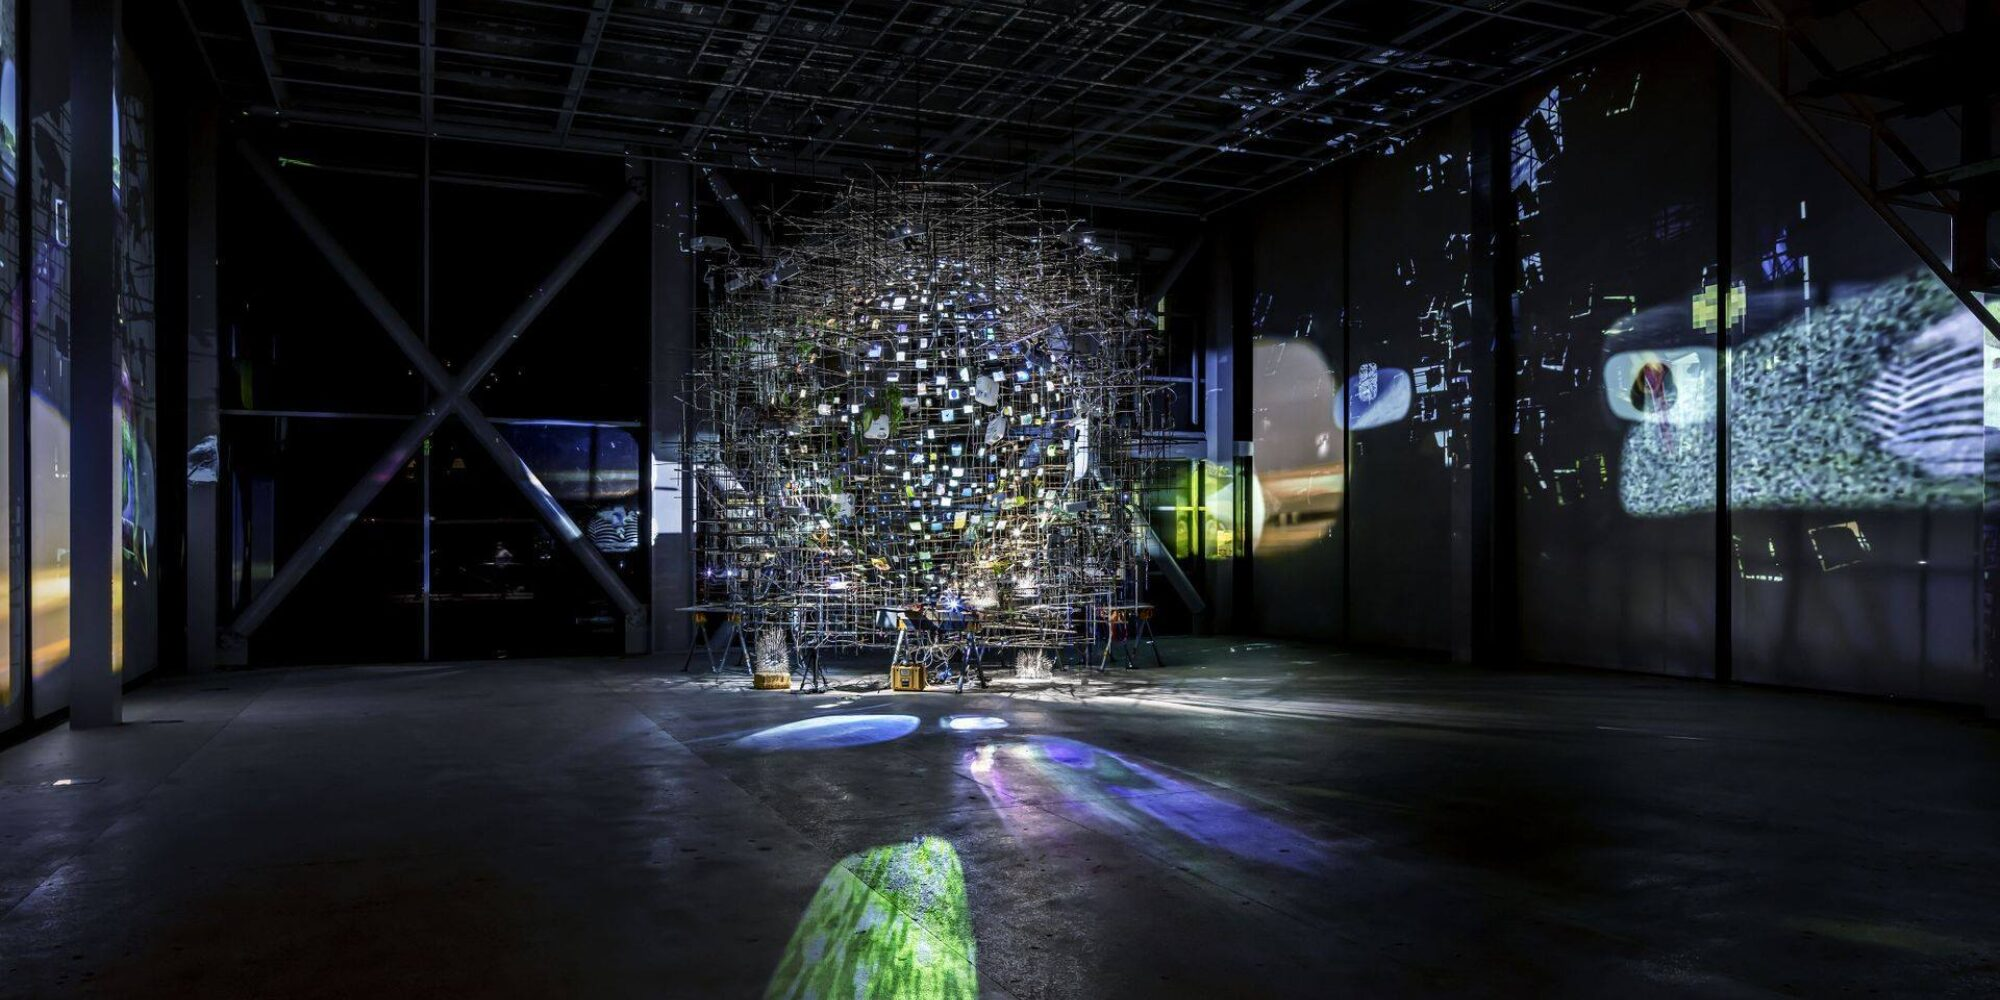 In a black gallery stands an orb-like structure of many small lights surrounded by scaffolding. Large projections of blue and white light project onto the floor, and scenes play on the left and right wall.